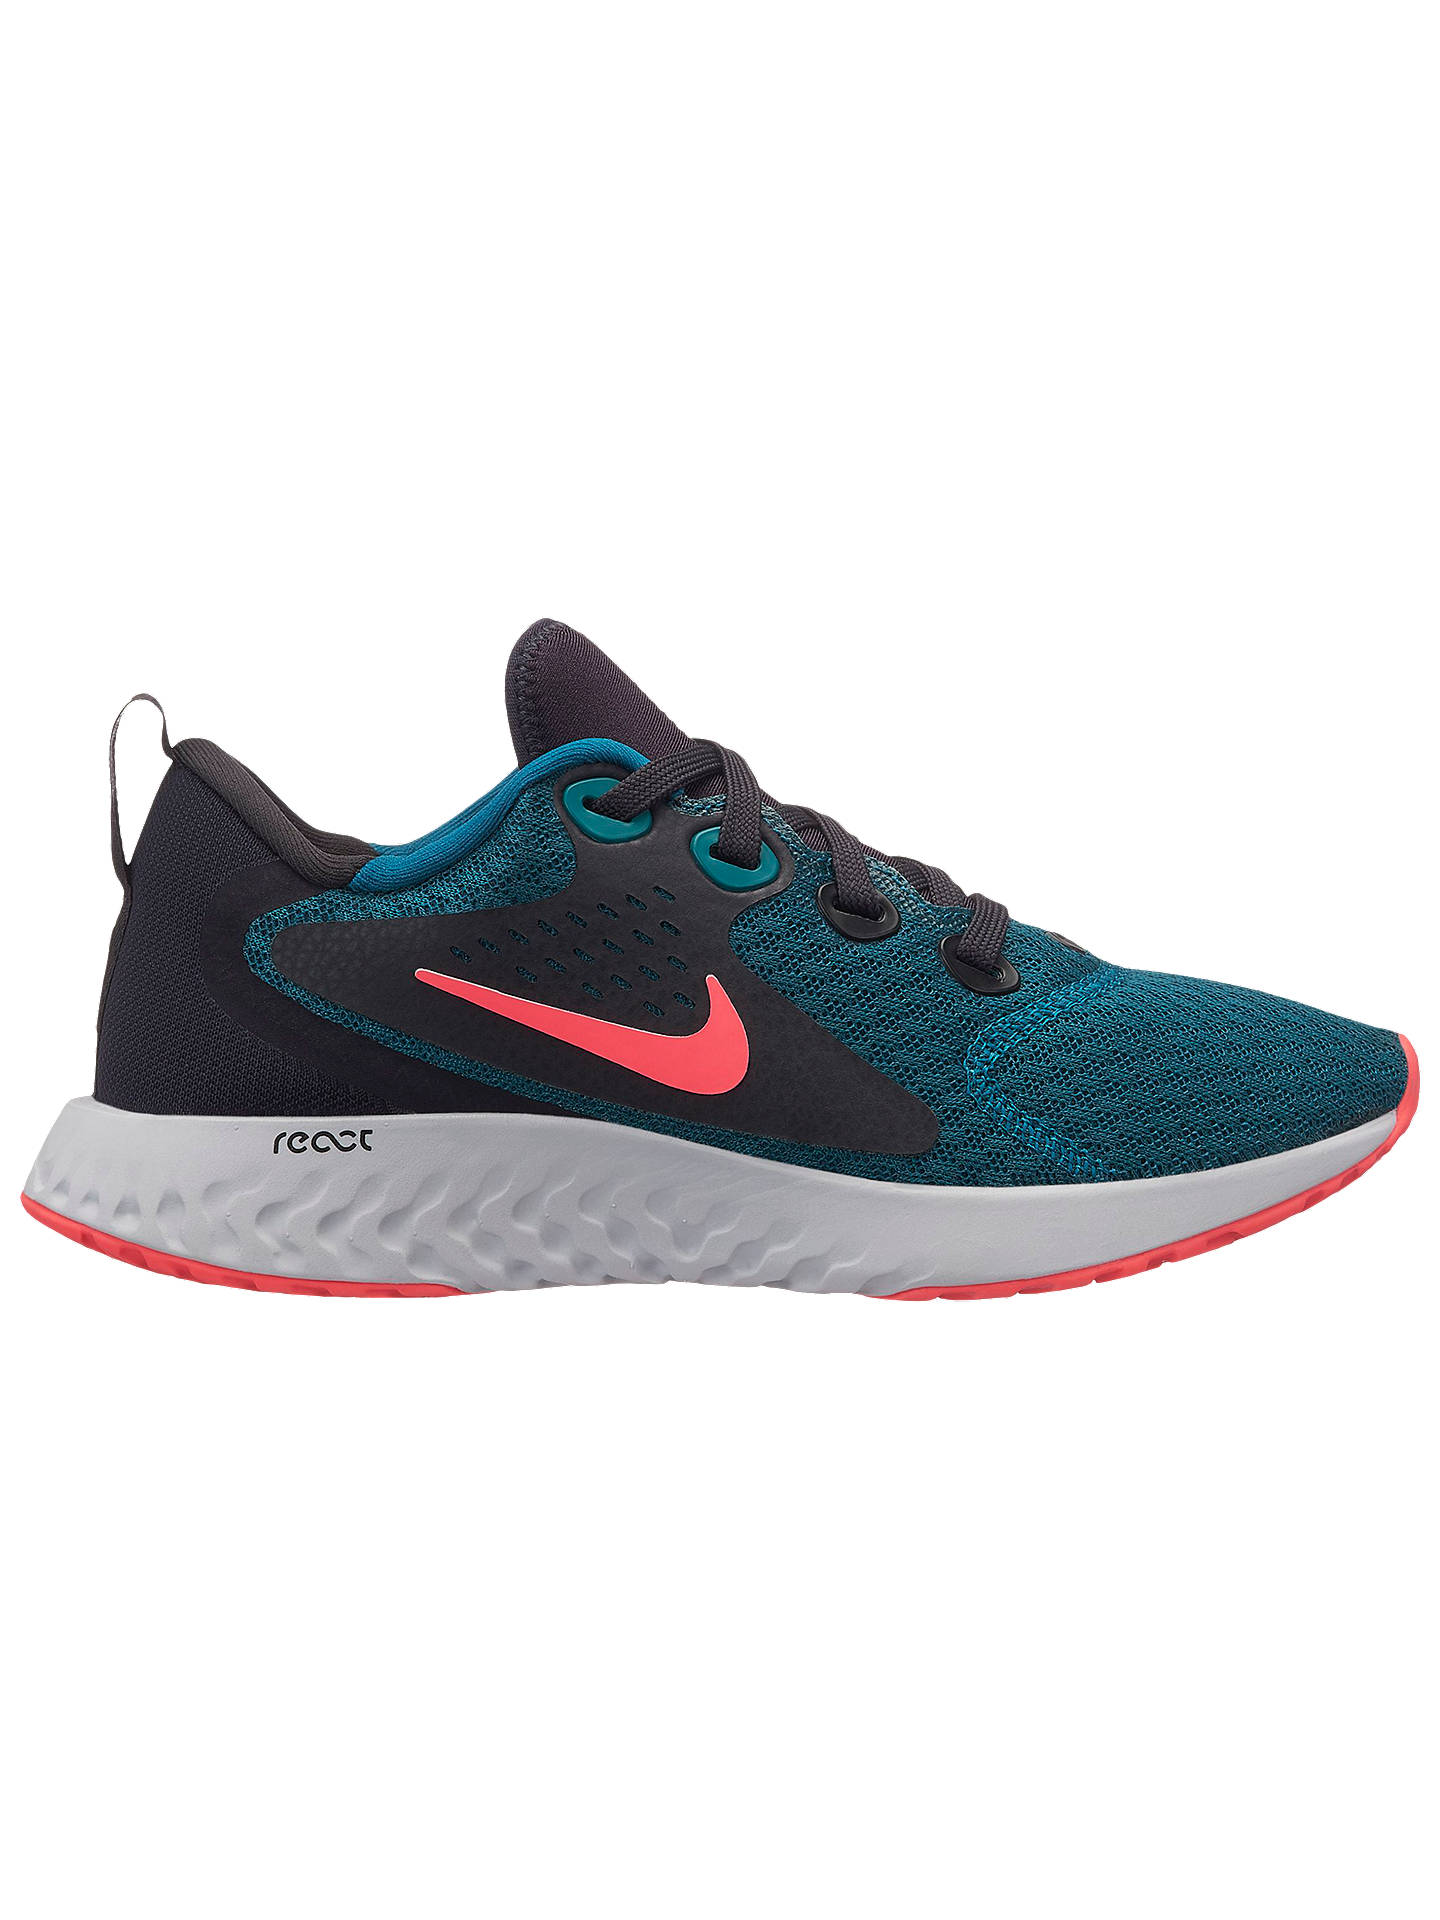 7d38369716245c Nike Children s Rebel React Trainers at John Lewis   Partners